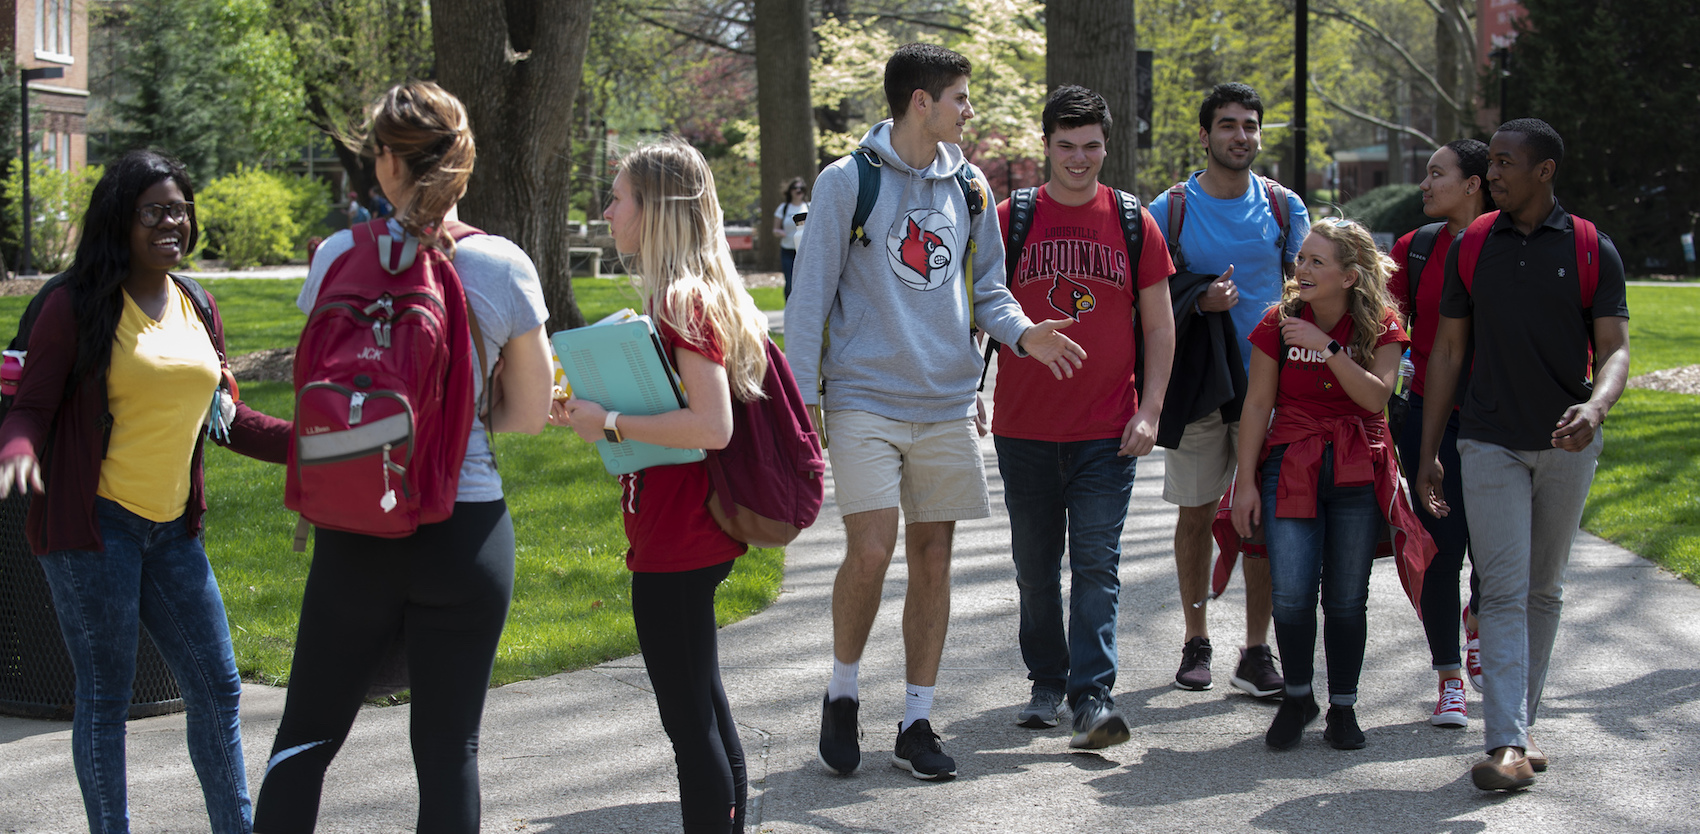 group of students on UofL's campus talking and walking